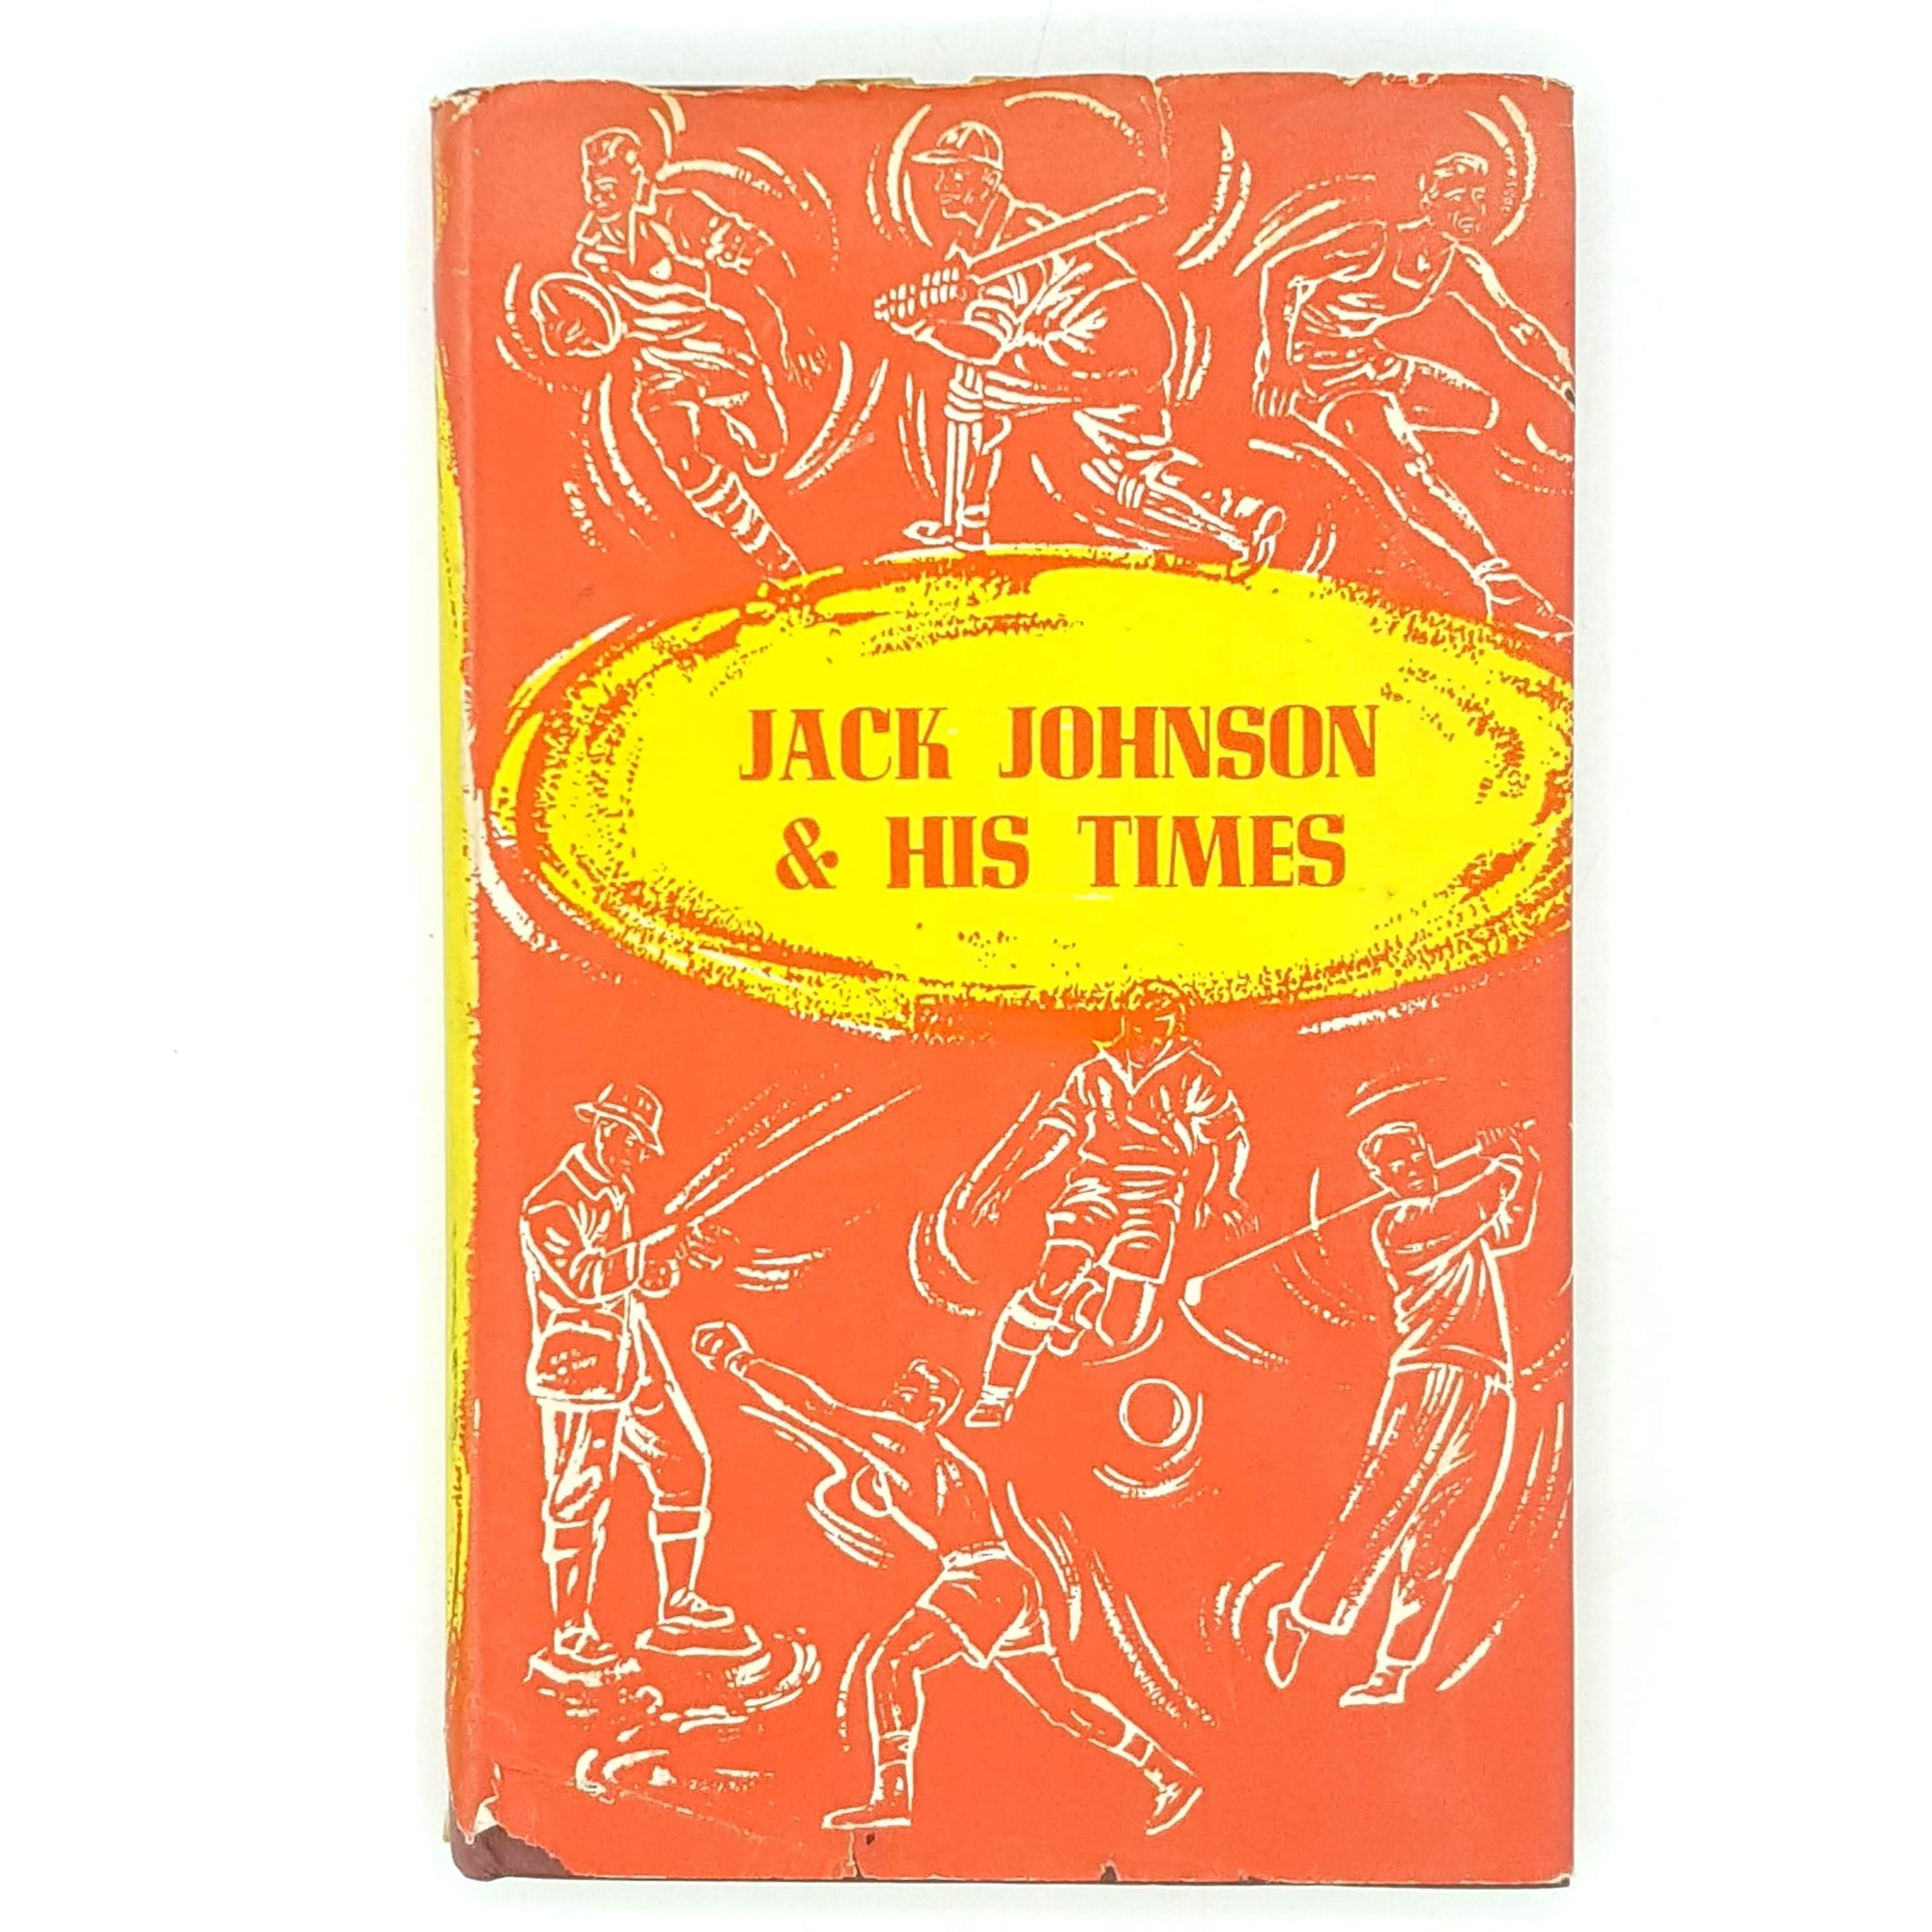 books-patterned-decorative-denzil-batchelor-country-house-library-vintage-classic-sport-red-thrift-boxing-sportsmans-book-club-jack-johnson-antique-old-